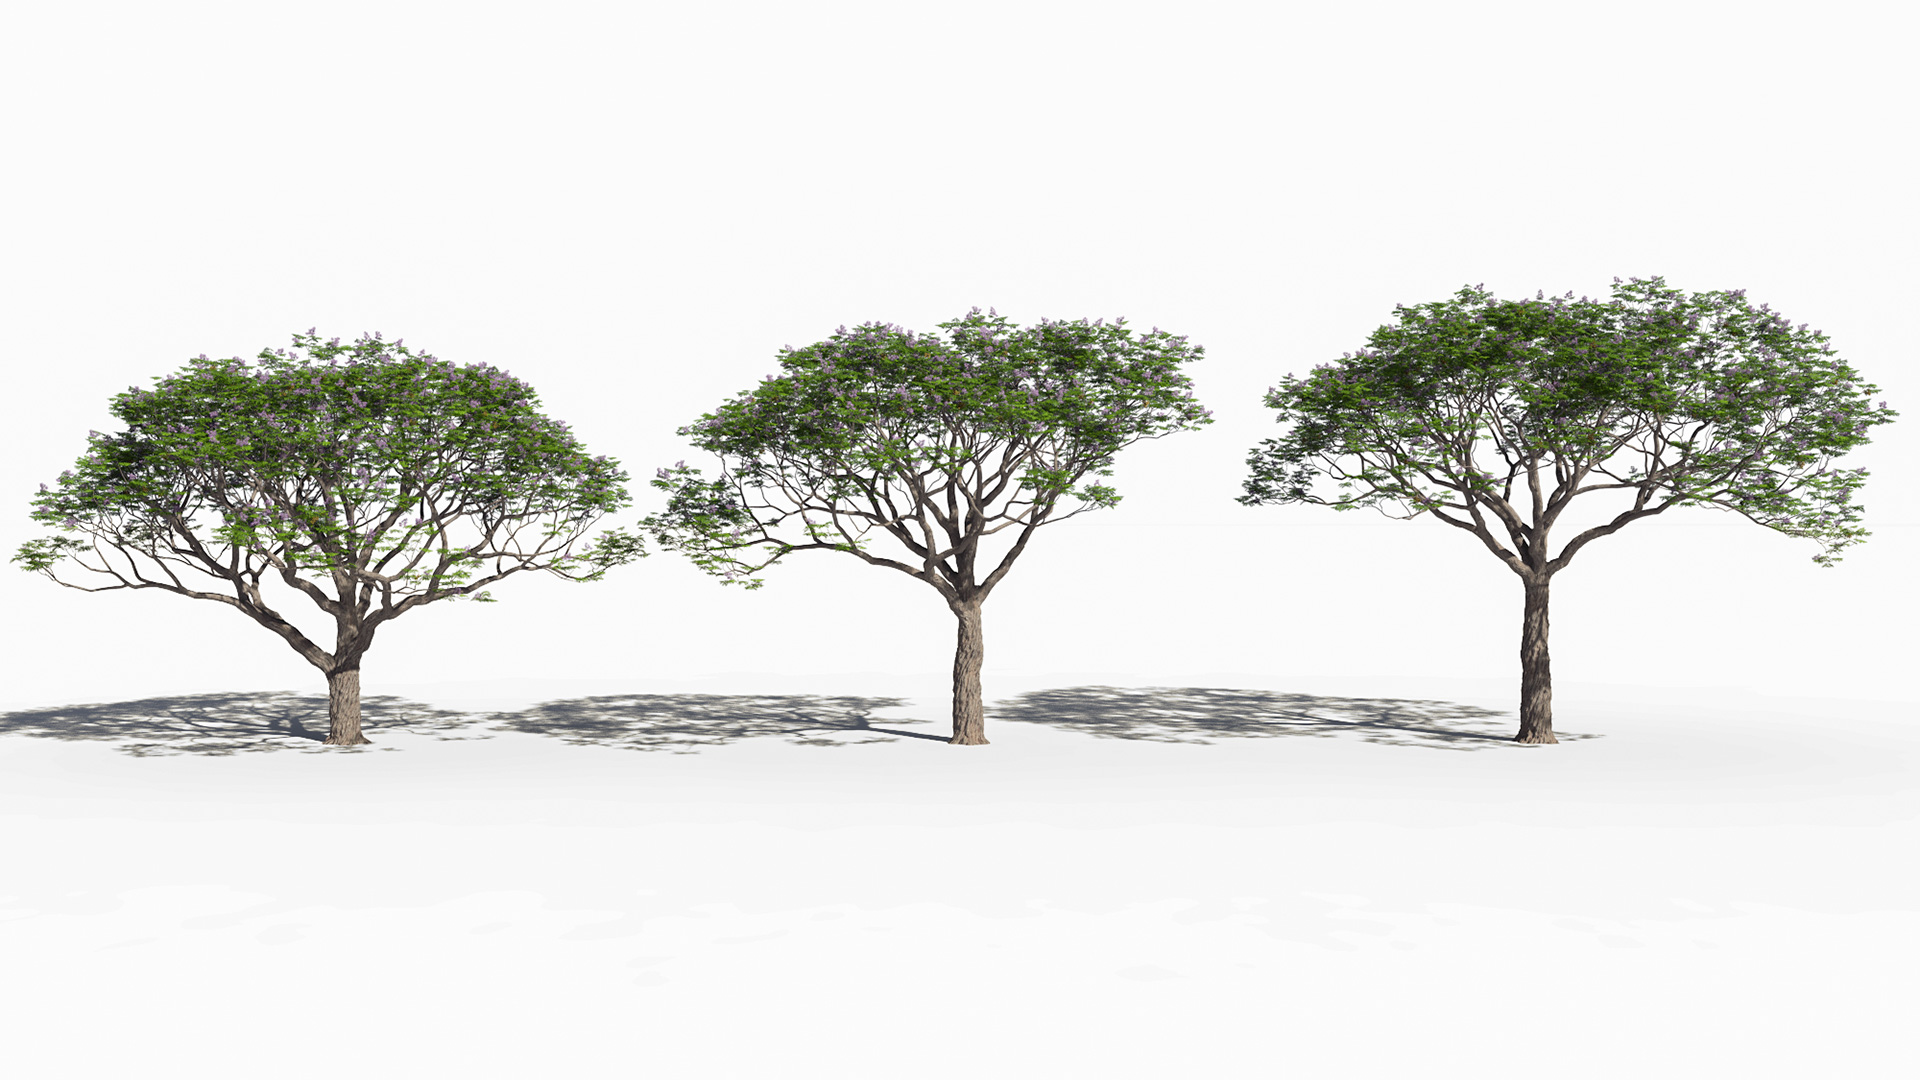 3D model of the Chinaberry tree Melia azedarach different presets